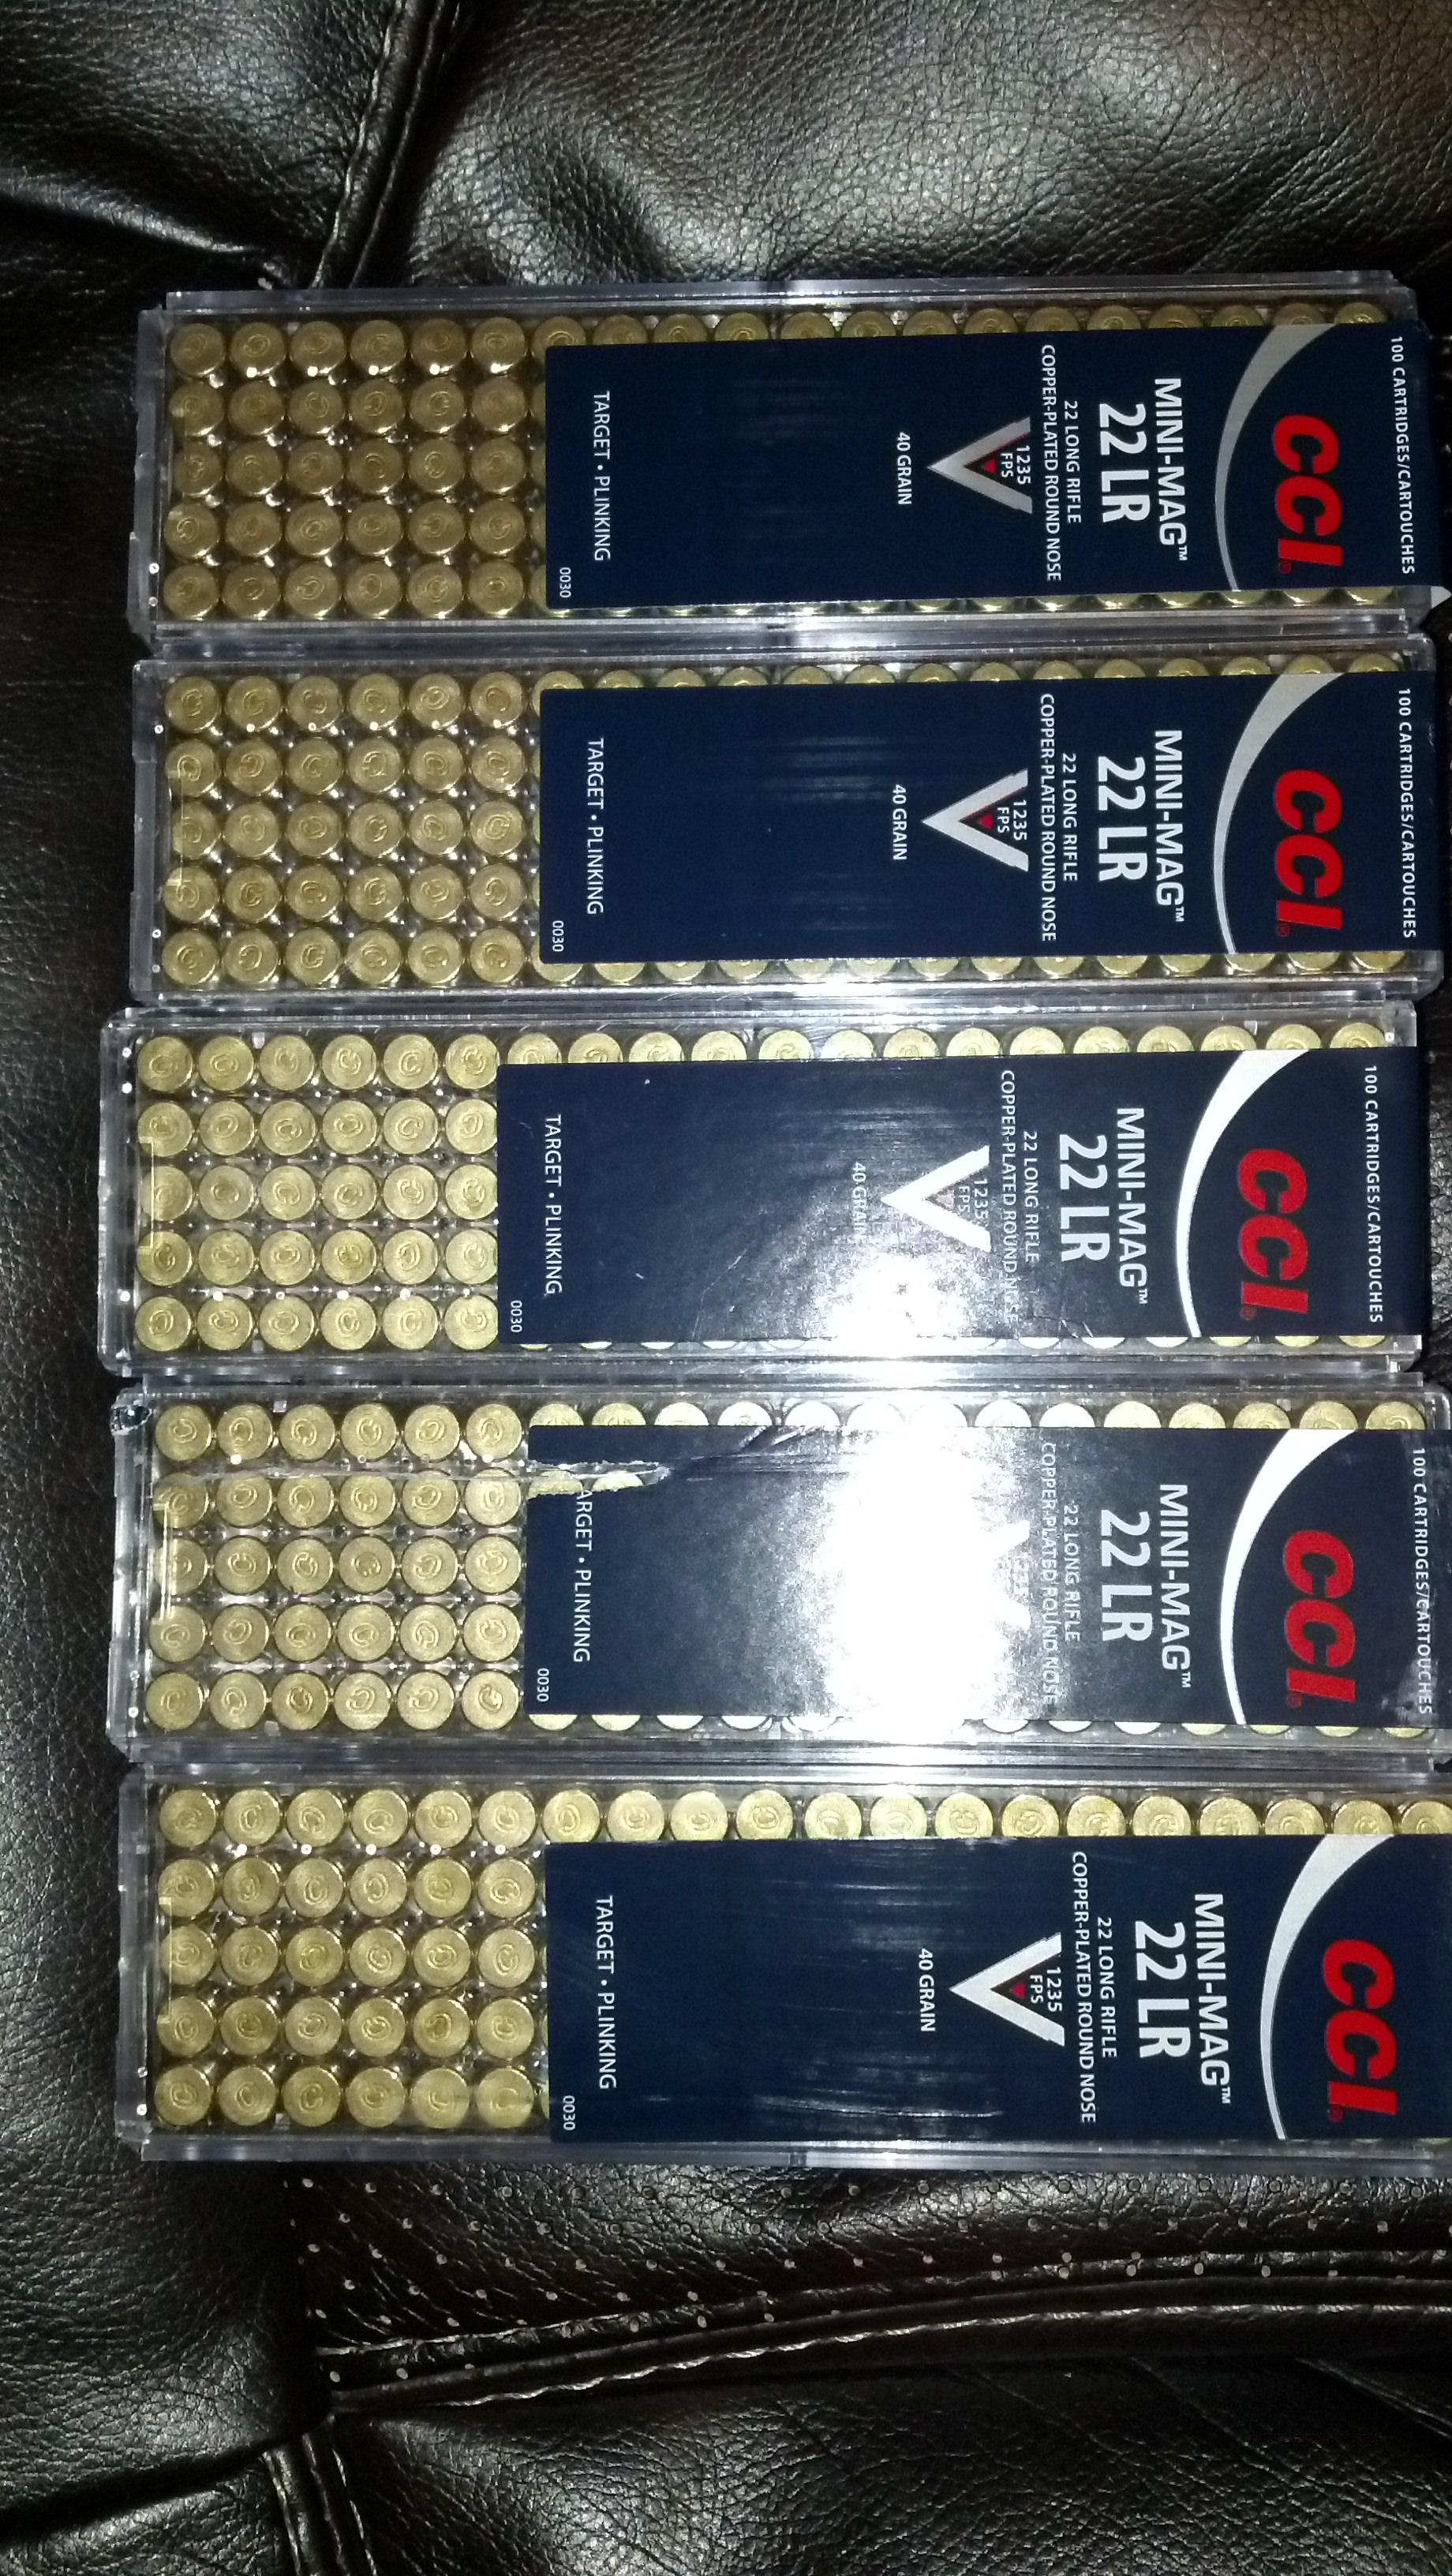 22lr 22 lr cci mini mag 500 rds  Non-Guns > Ammunition